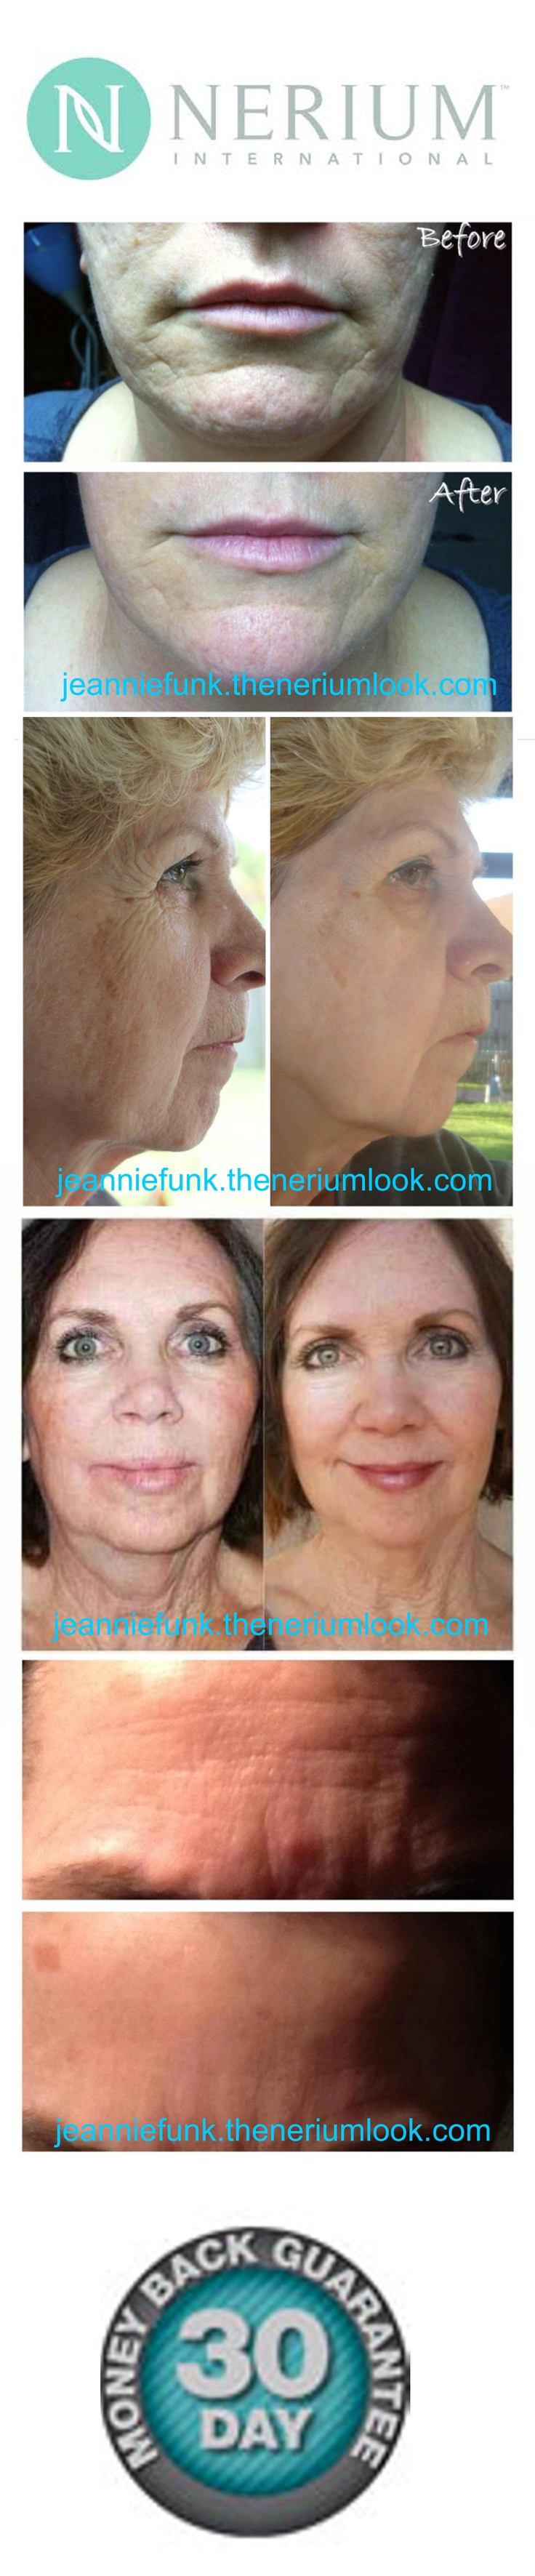 LOOK BETTER.  LIVE BETTER!   Nerium International http://jeanniefunk.theneriumlook.com